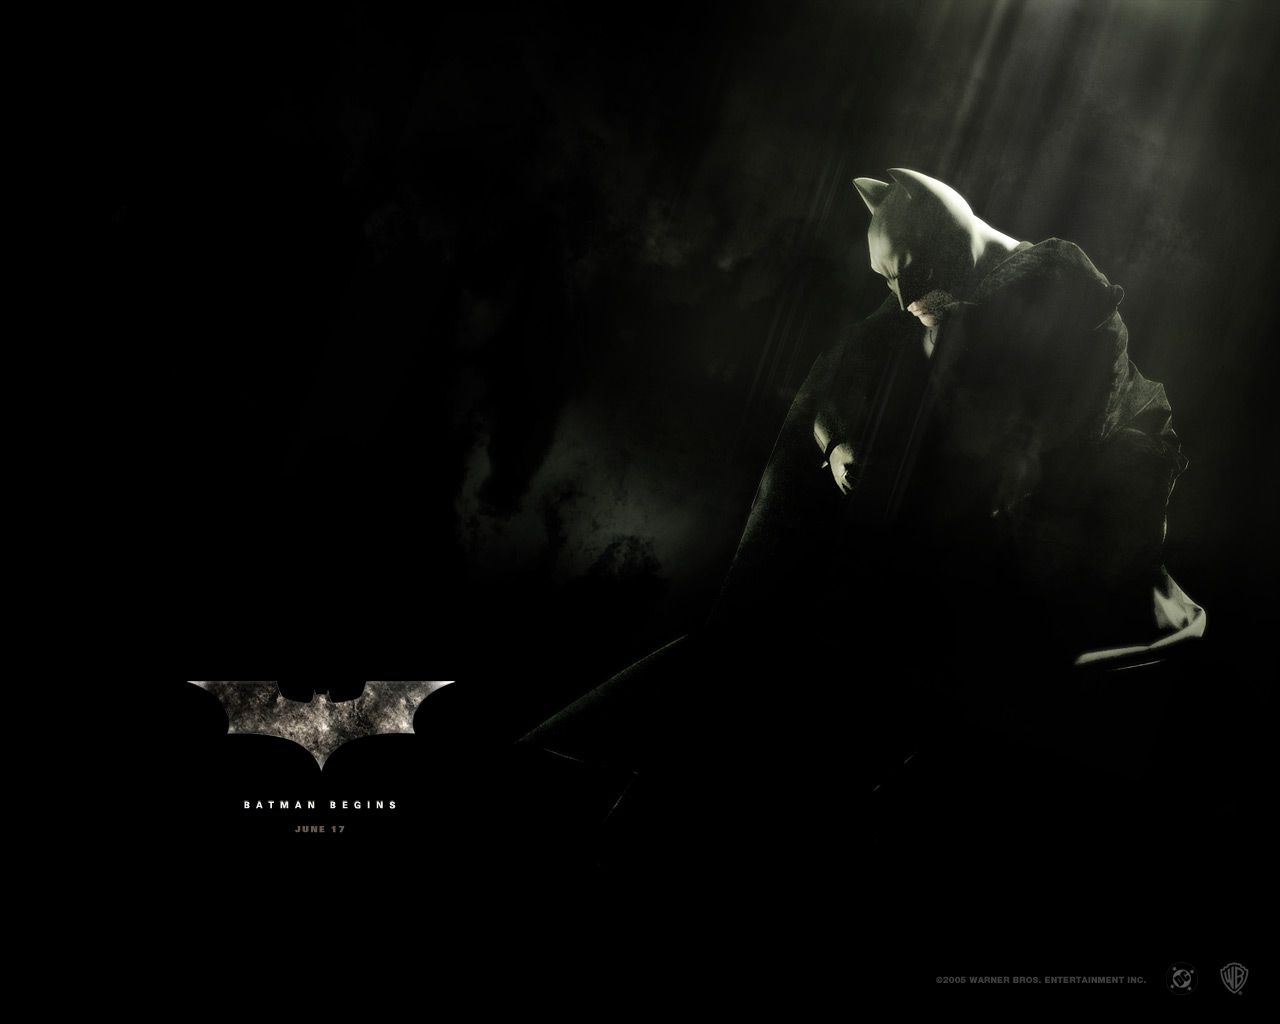 Batman Alone Black Poster Wallpaper 1280x1024